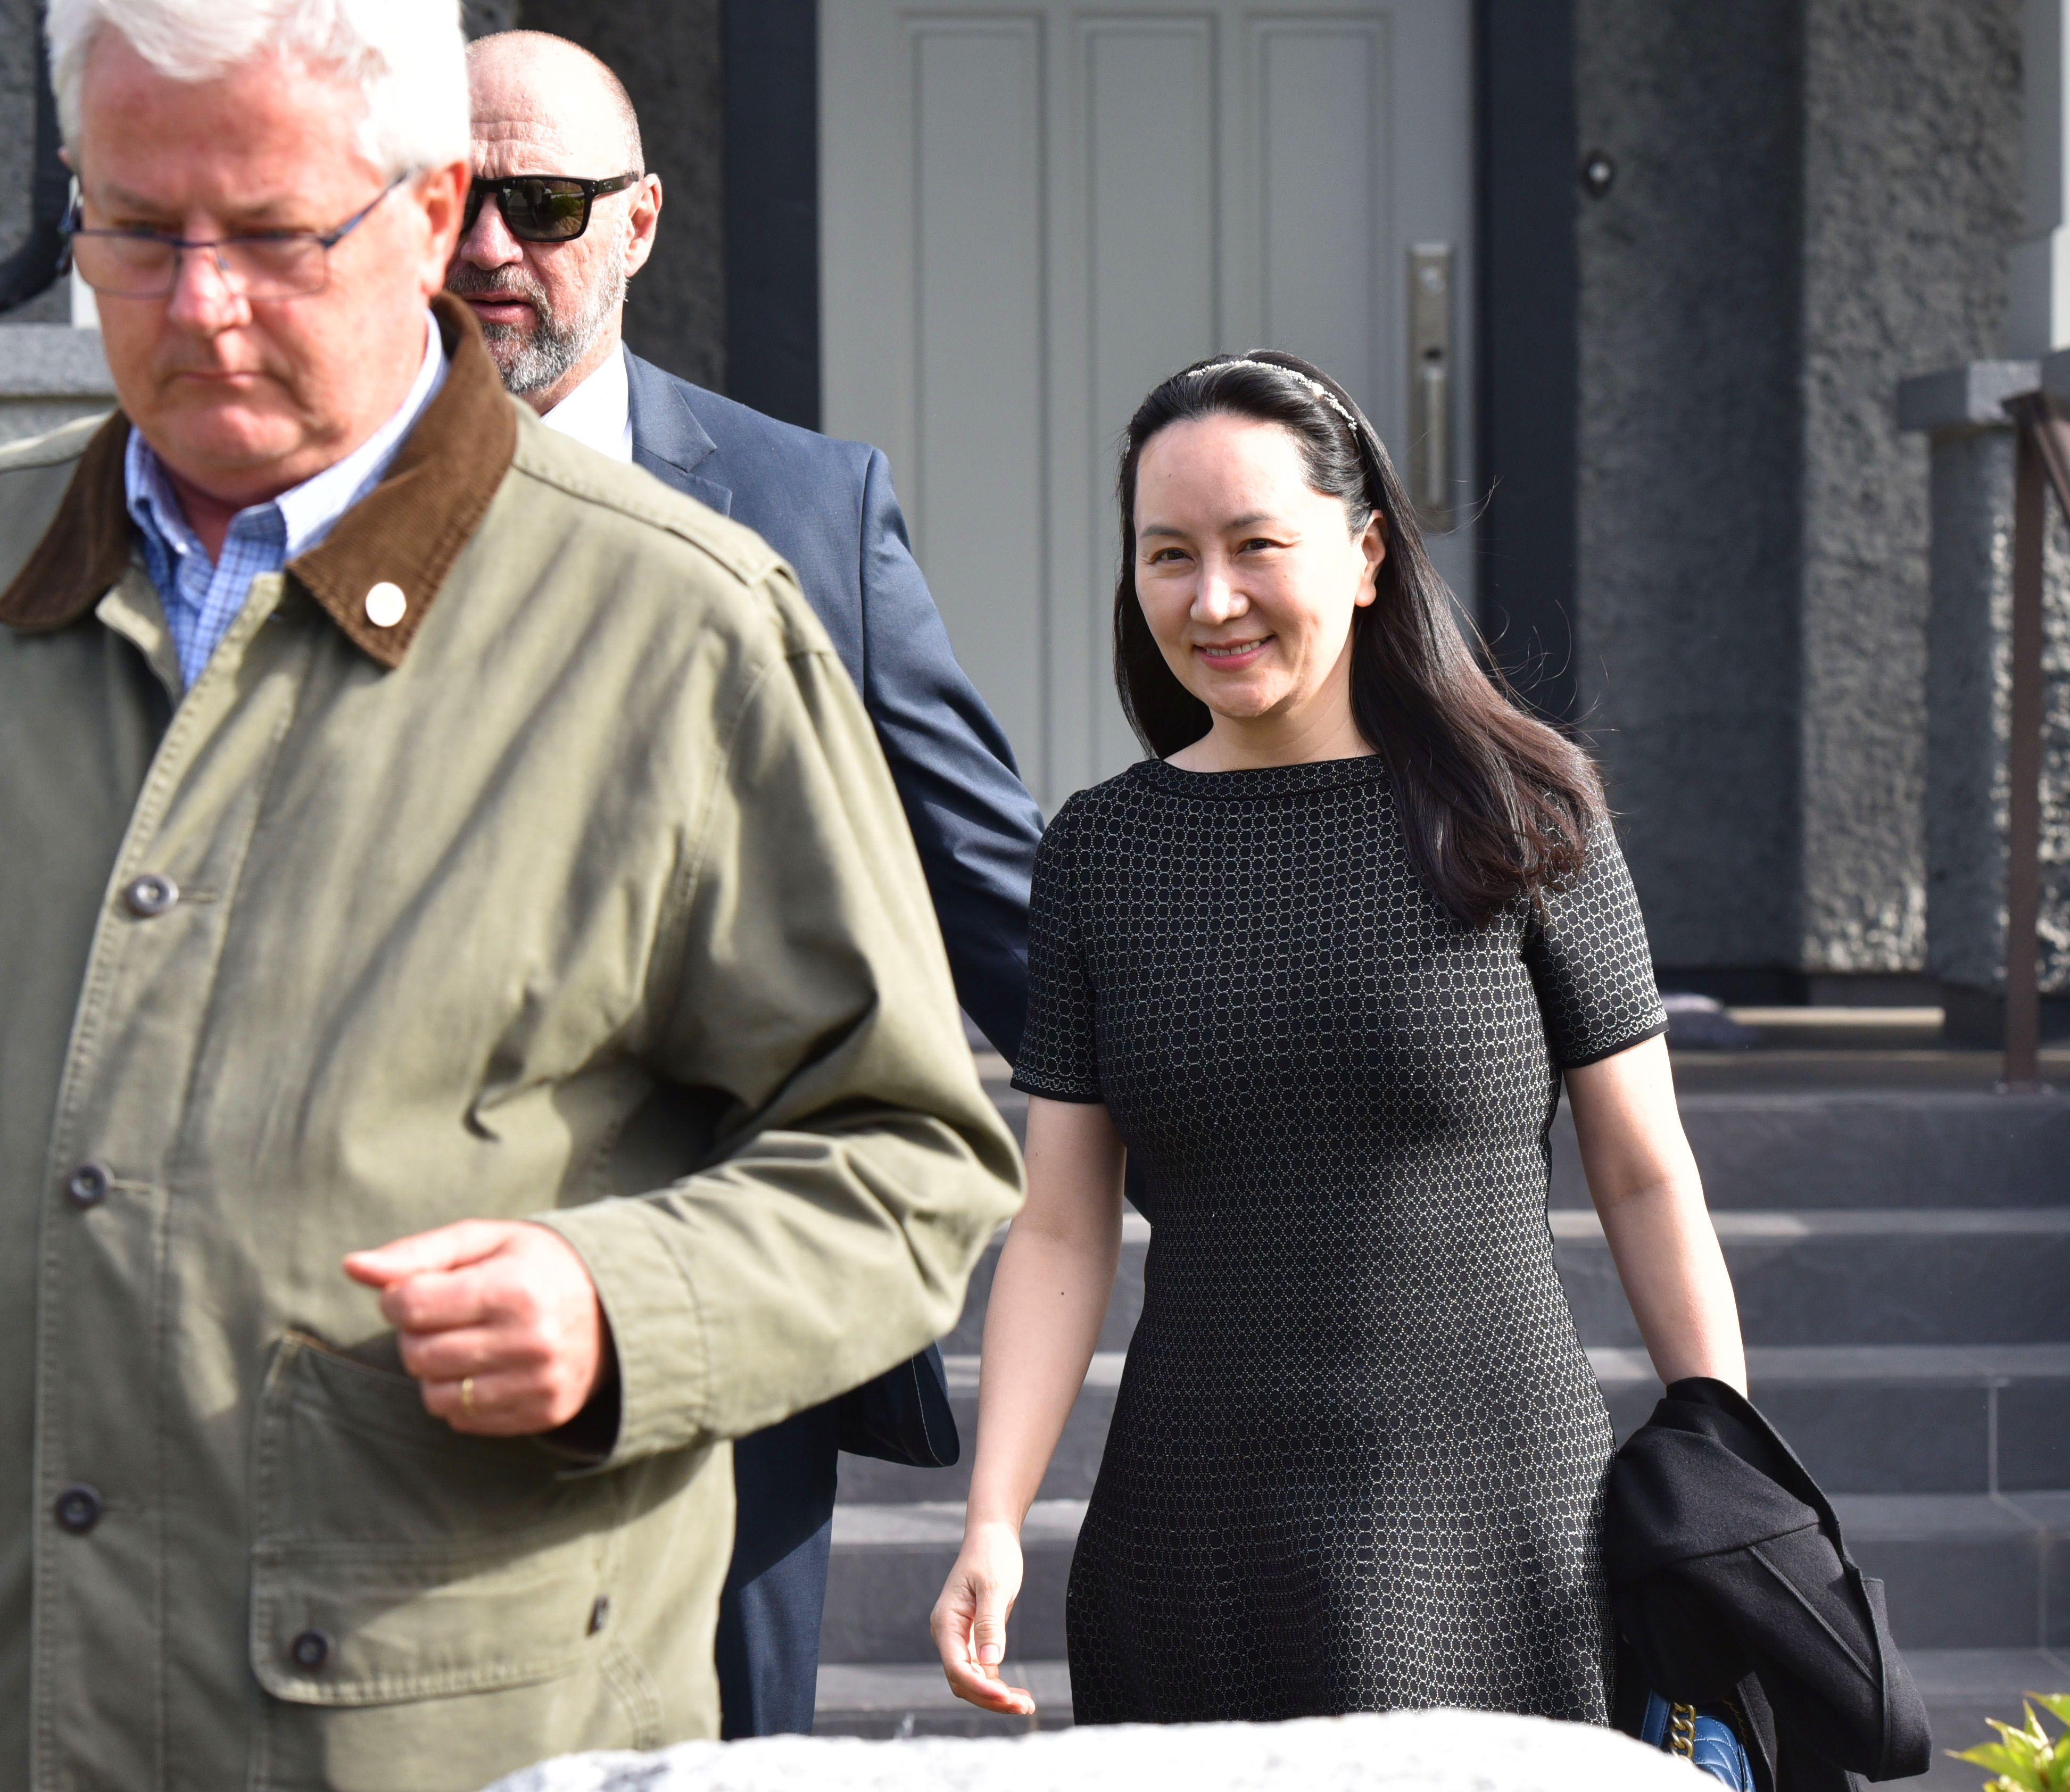 Huawei Chief Financial Officer, Meng Wanzhou, leaves her residence to attend British Columbia Supreme Court, in Vancouver, on March 8, 2019. - Meng, whose Vancouver arrest on a US warrant triggered a diplomatic row between Ottawa and Beijing, was to appear in court to fight for her release. Canada's justice department said the court will set the next key dates in an extradition process -- including the start of the formal hearing for Meng , which could take months or even years. (Photo by Don MacKinnon / AFP)